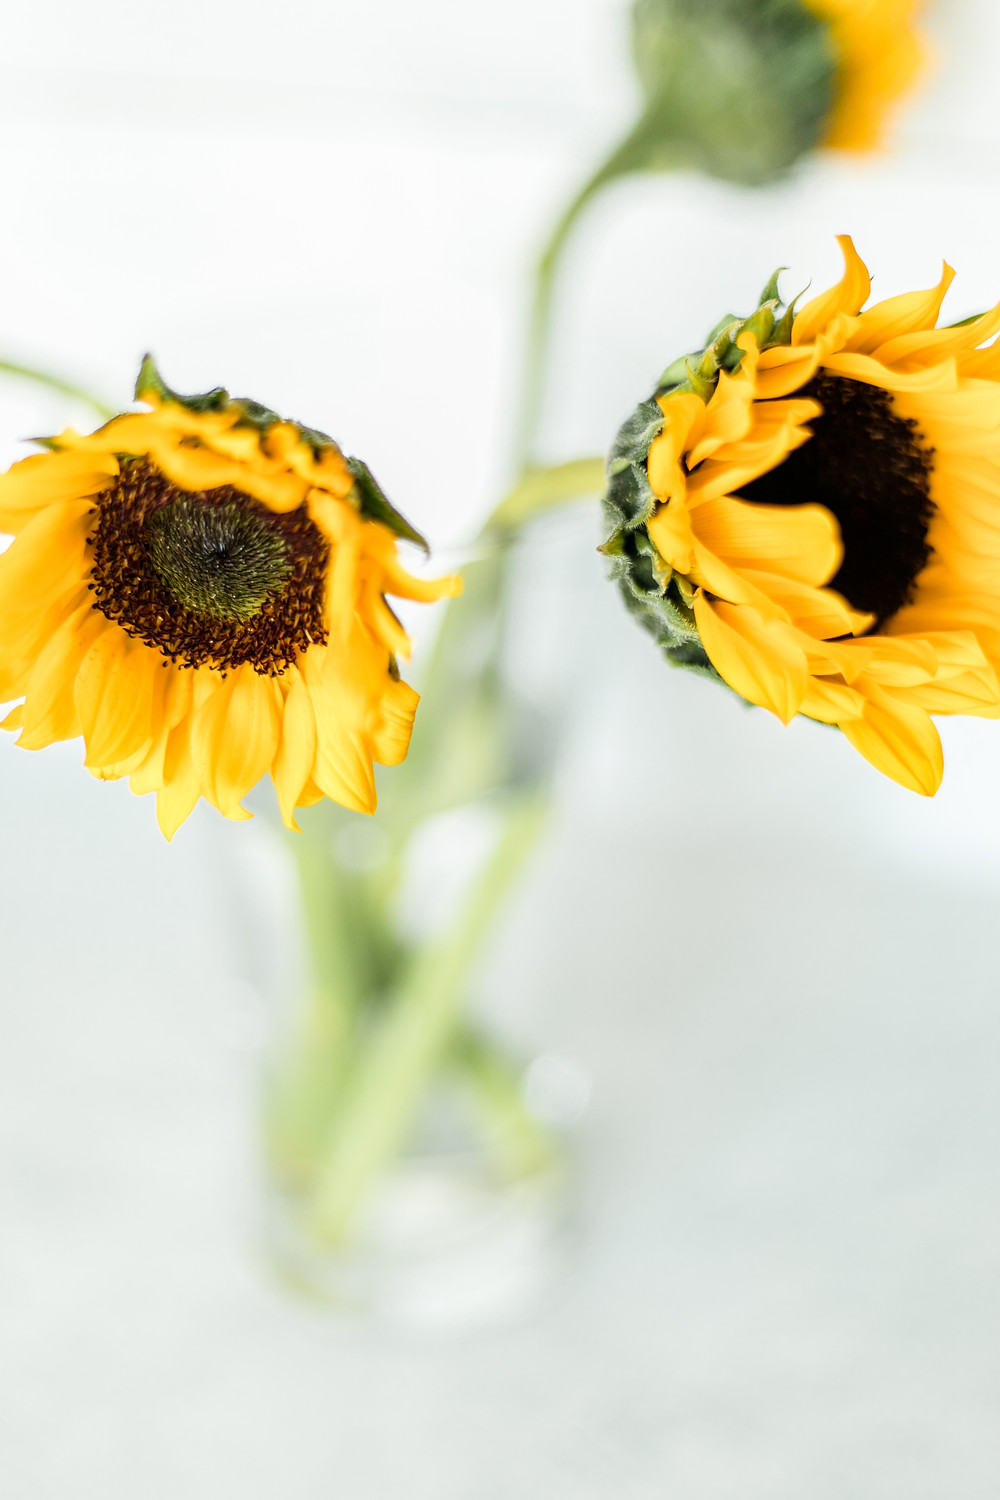 Light and Airy sunflowers in a vase.